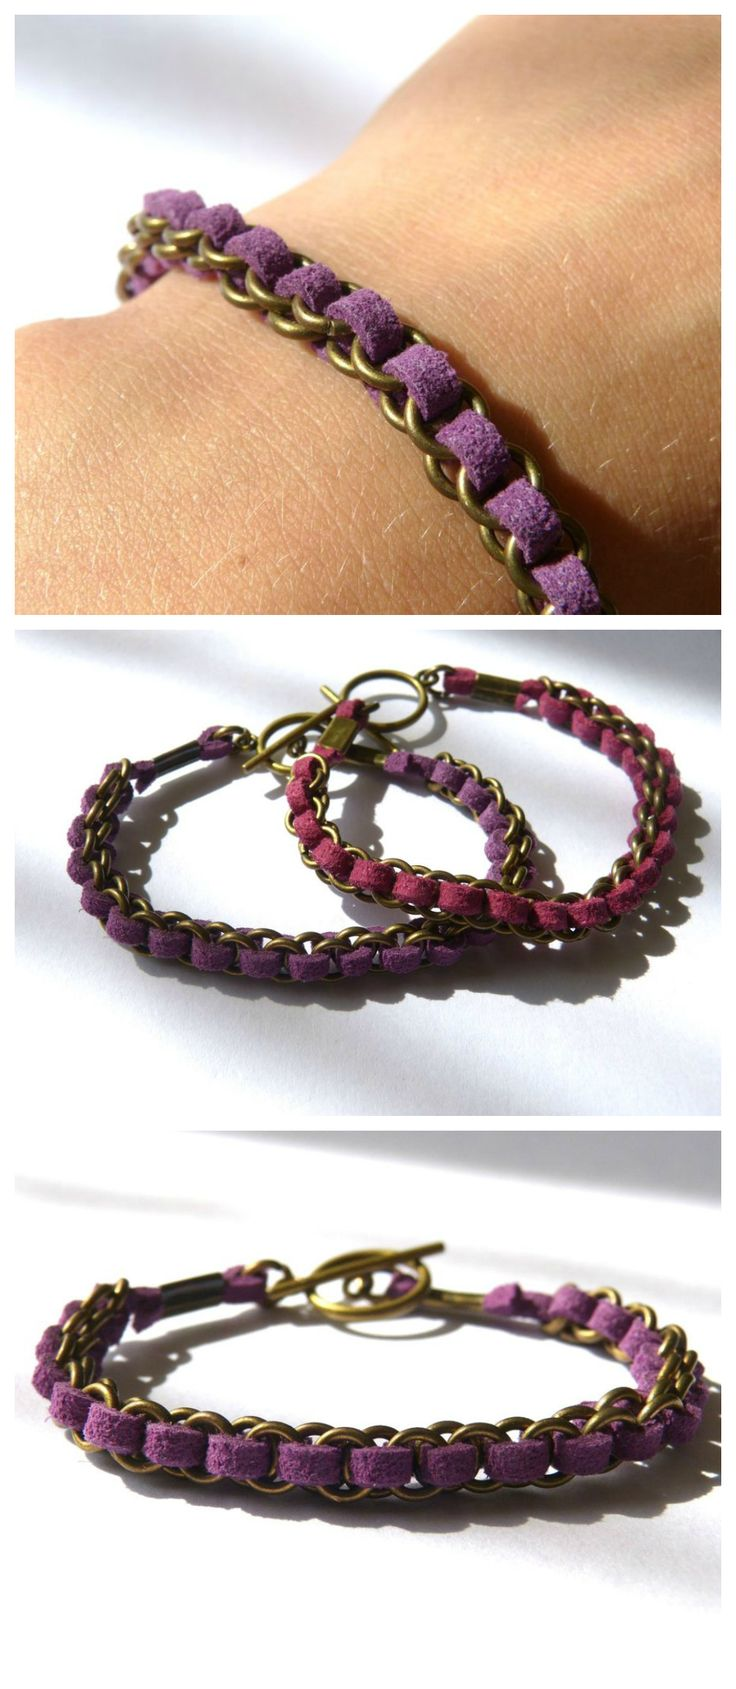 Weave faux suède lace into jump rings to make this super easy and cute bracelet.